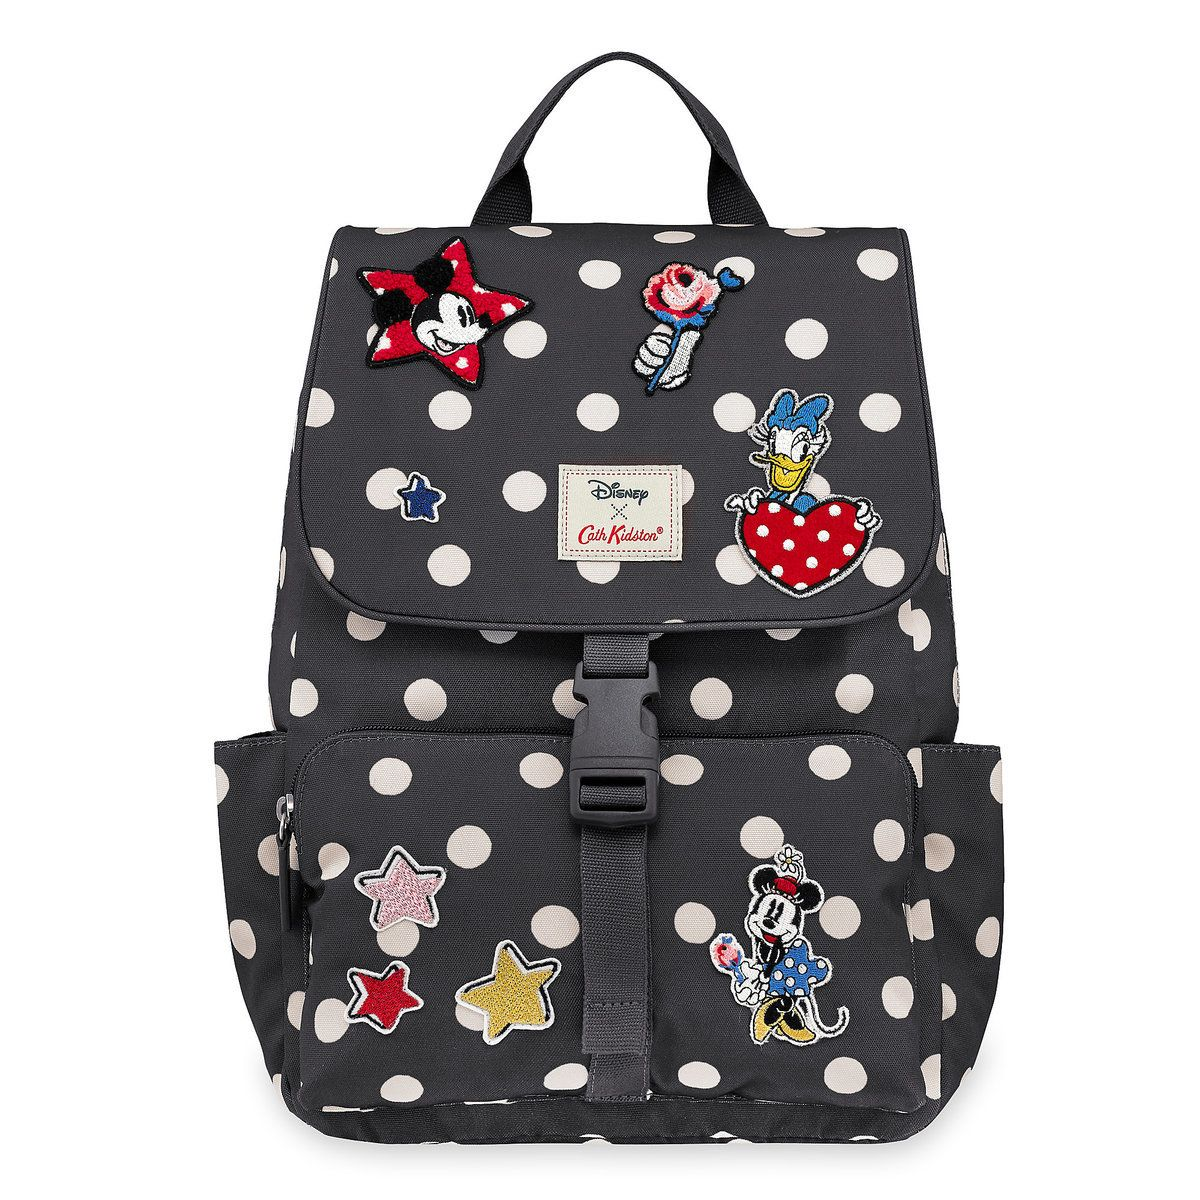 1e1718cb2f7b Mickey Mouse and Friends Buckle Backpack by Cath Kidston l ...